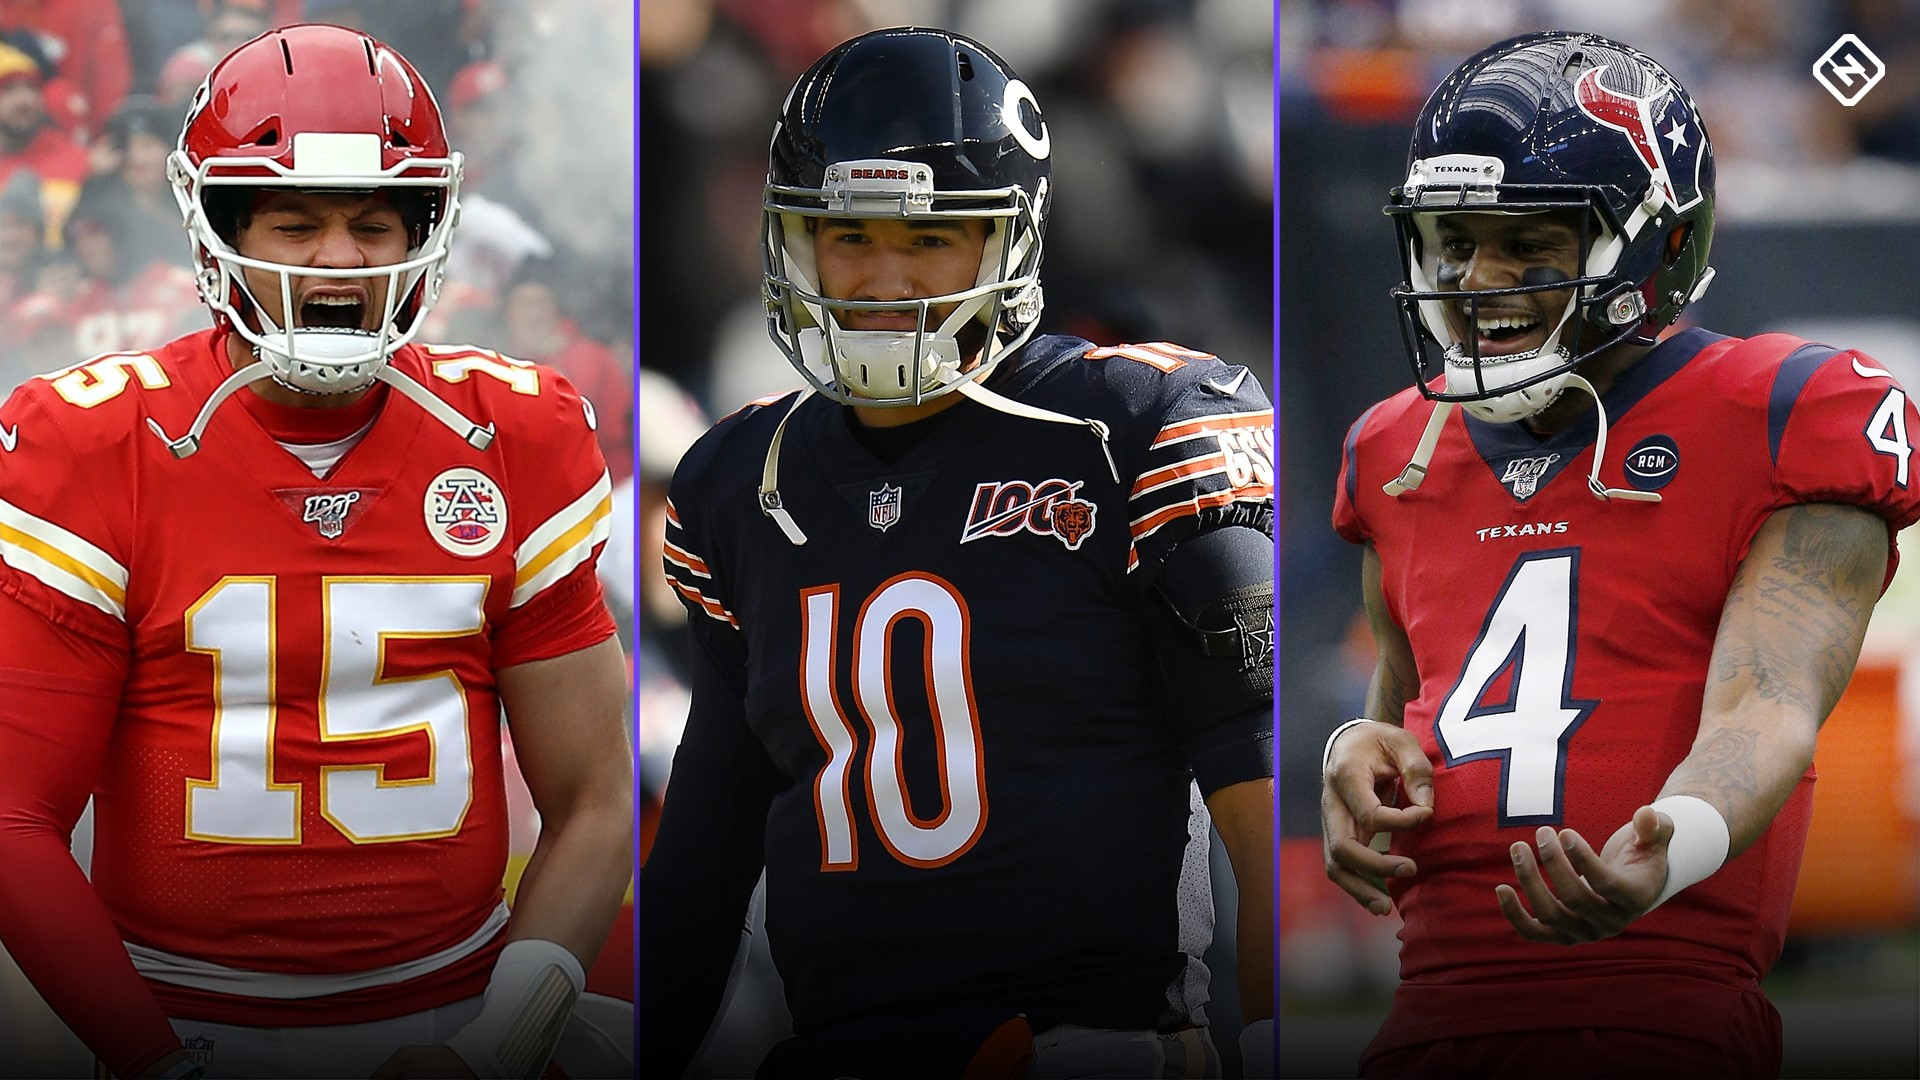 NFL Draft 2017, revisited: Why Bears picked Mitchell Trubisky, let Patrick Mahomes and Deshaun Watson fall to Chiefs and Texans